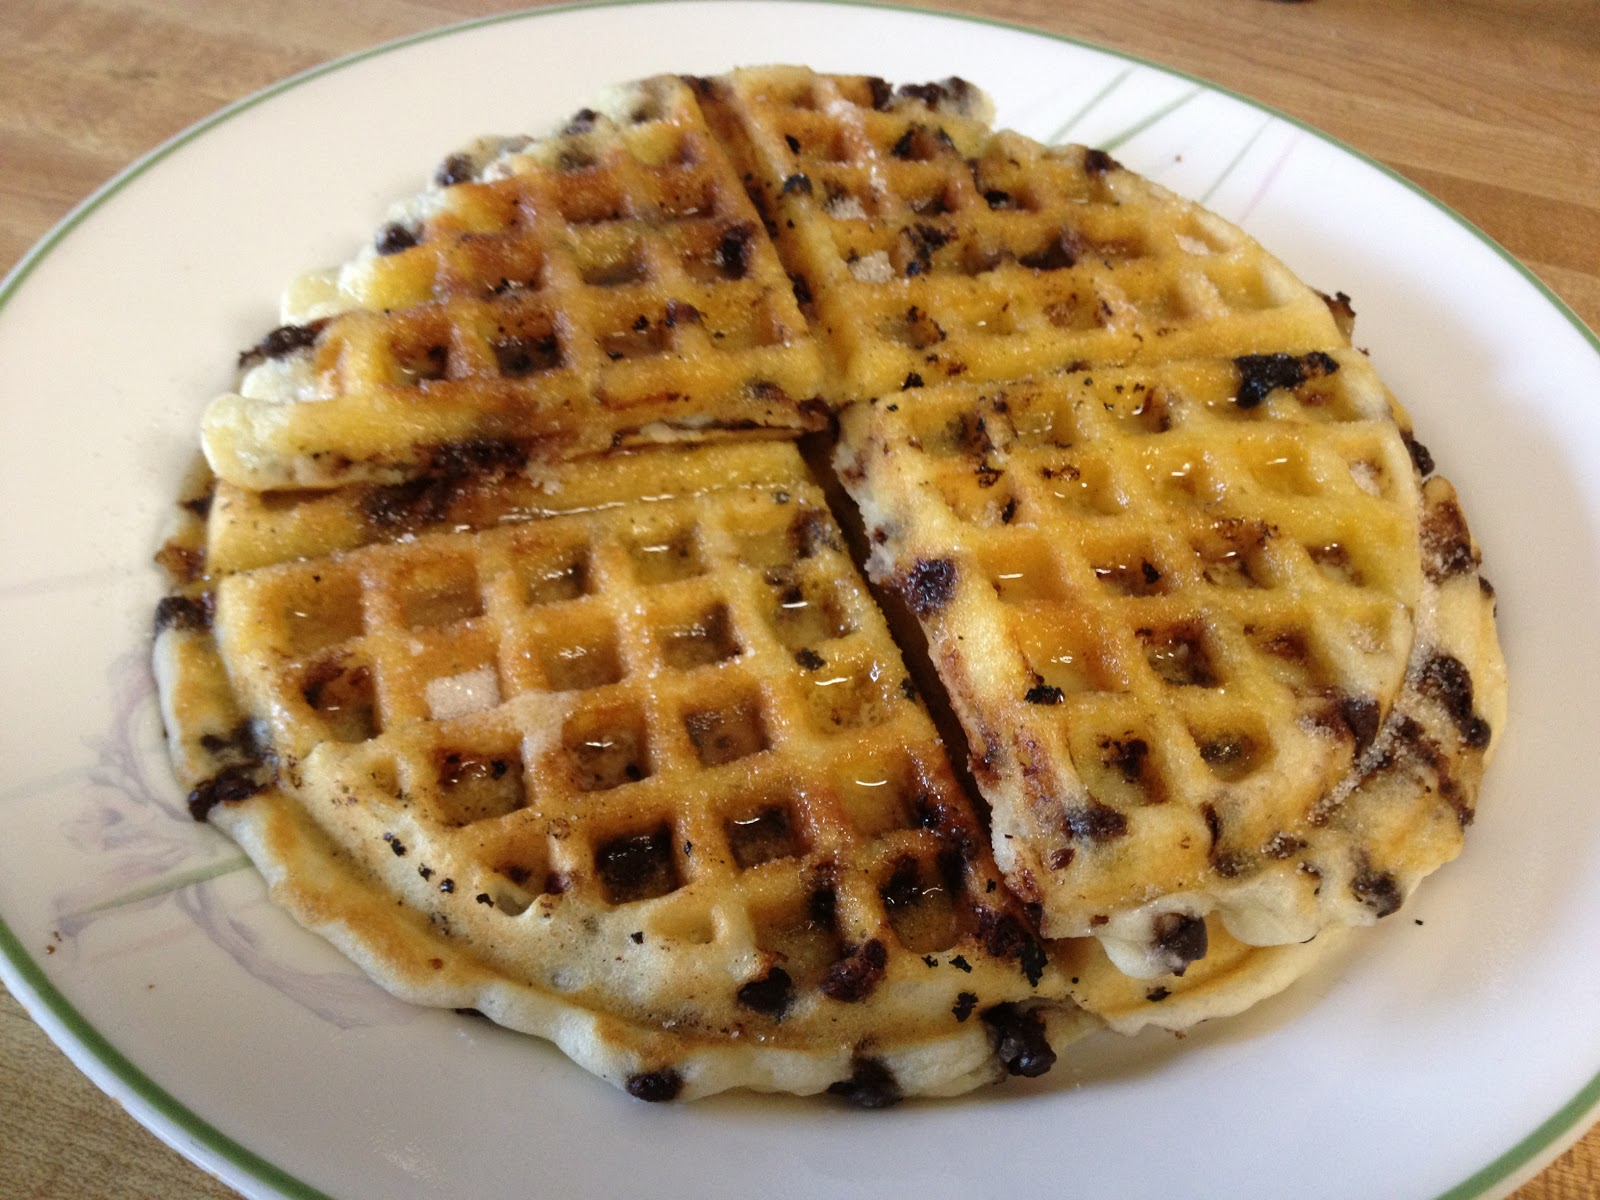 chip, but you can really mix in anything to give your waffles ...